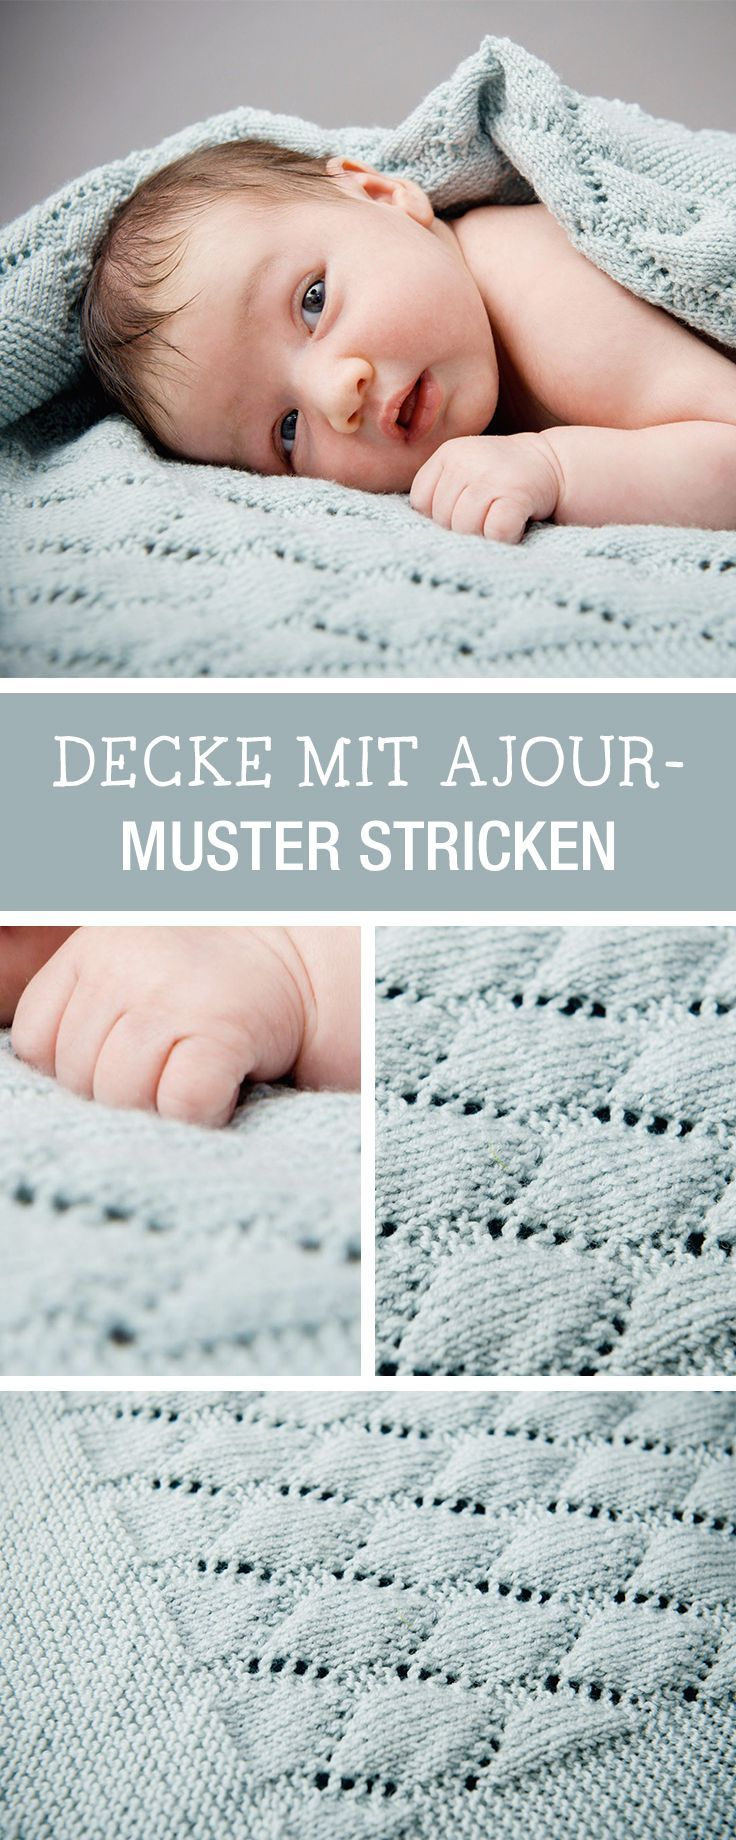 diy anleitung decke mit ajour muster f r babys stricken geschenk zur taufe diy tutorial. Black Bedroom Furniture Sets. Home Design Ideas